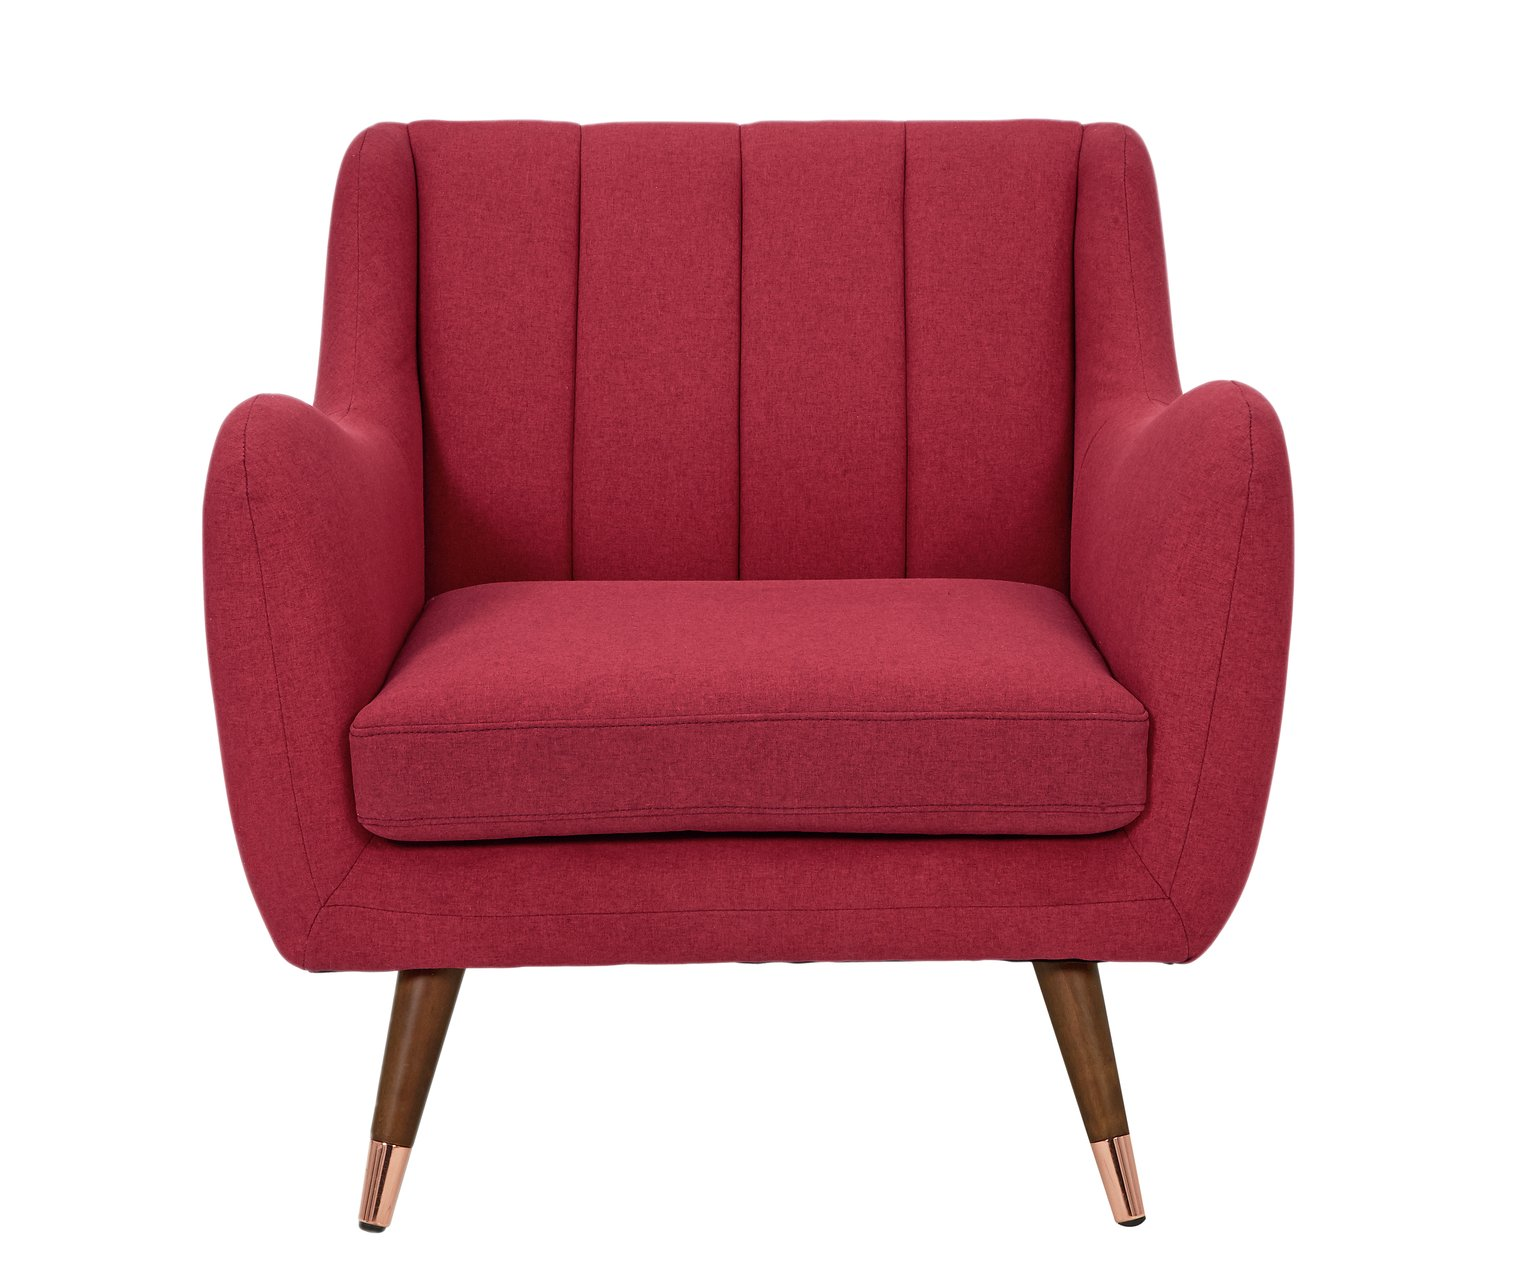 Argos Home Leila Fabric Armchair - Red